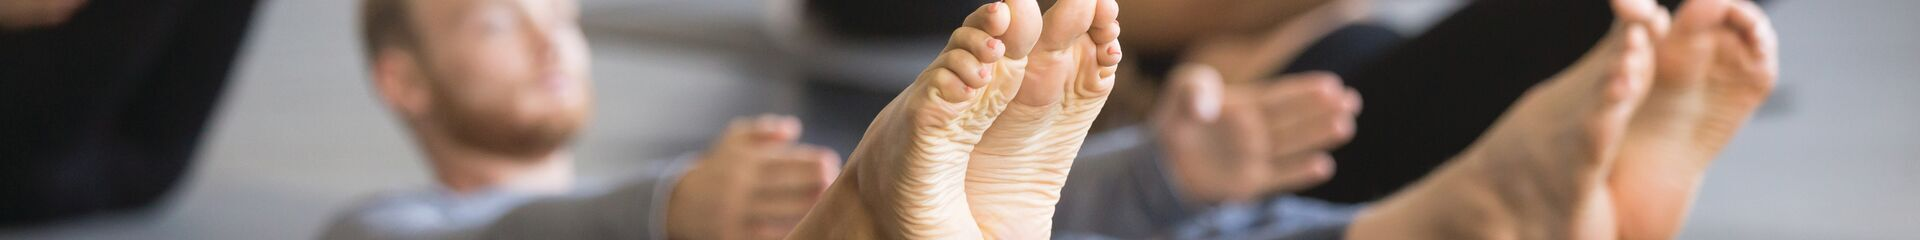 Closeup of people's feet while performing yoga